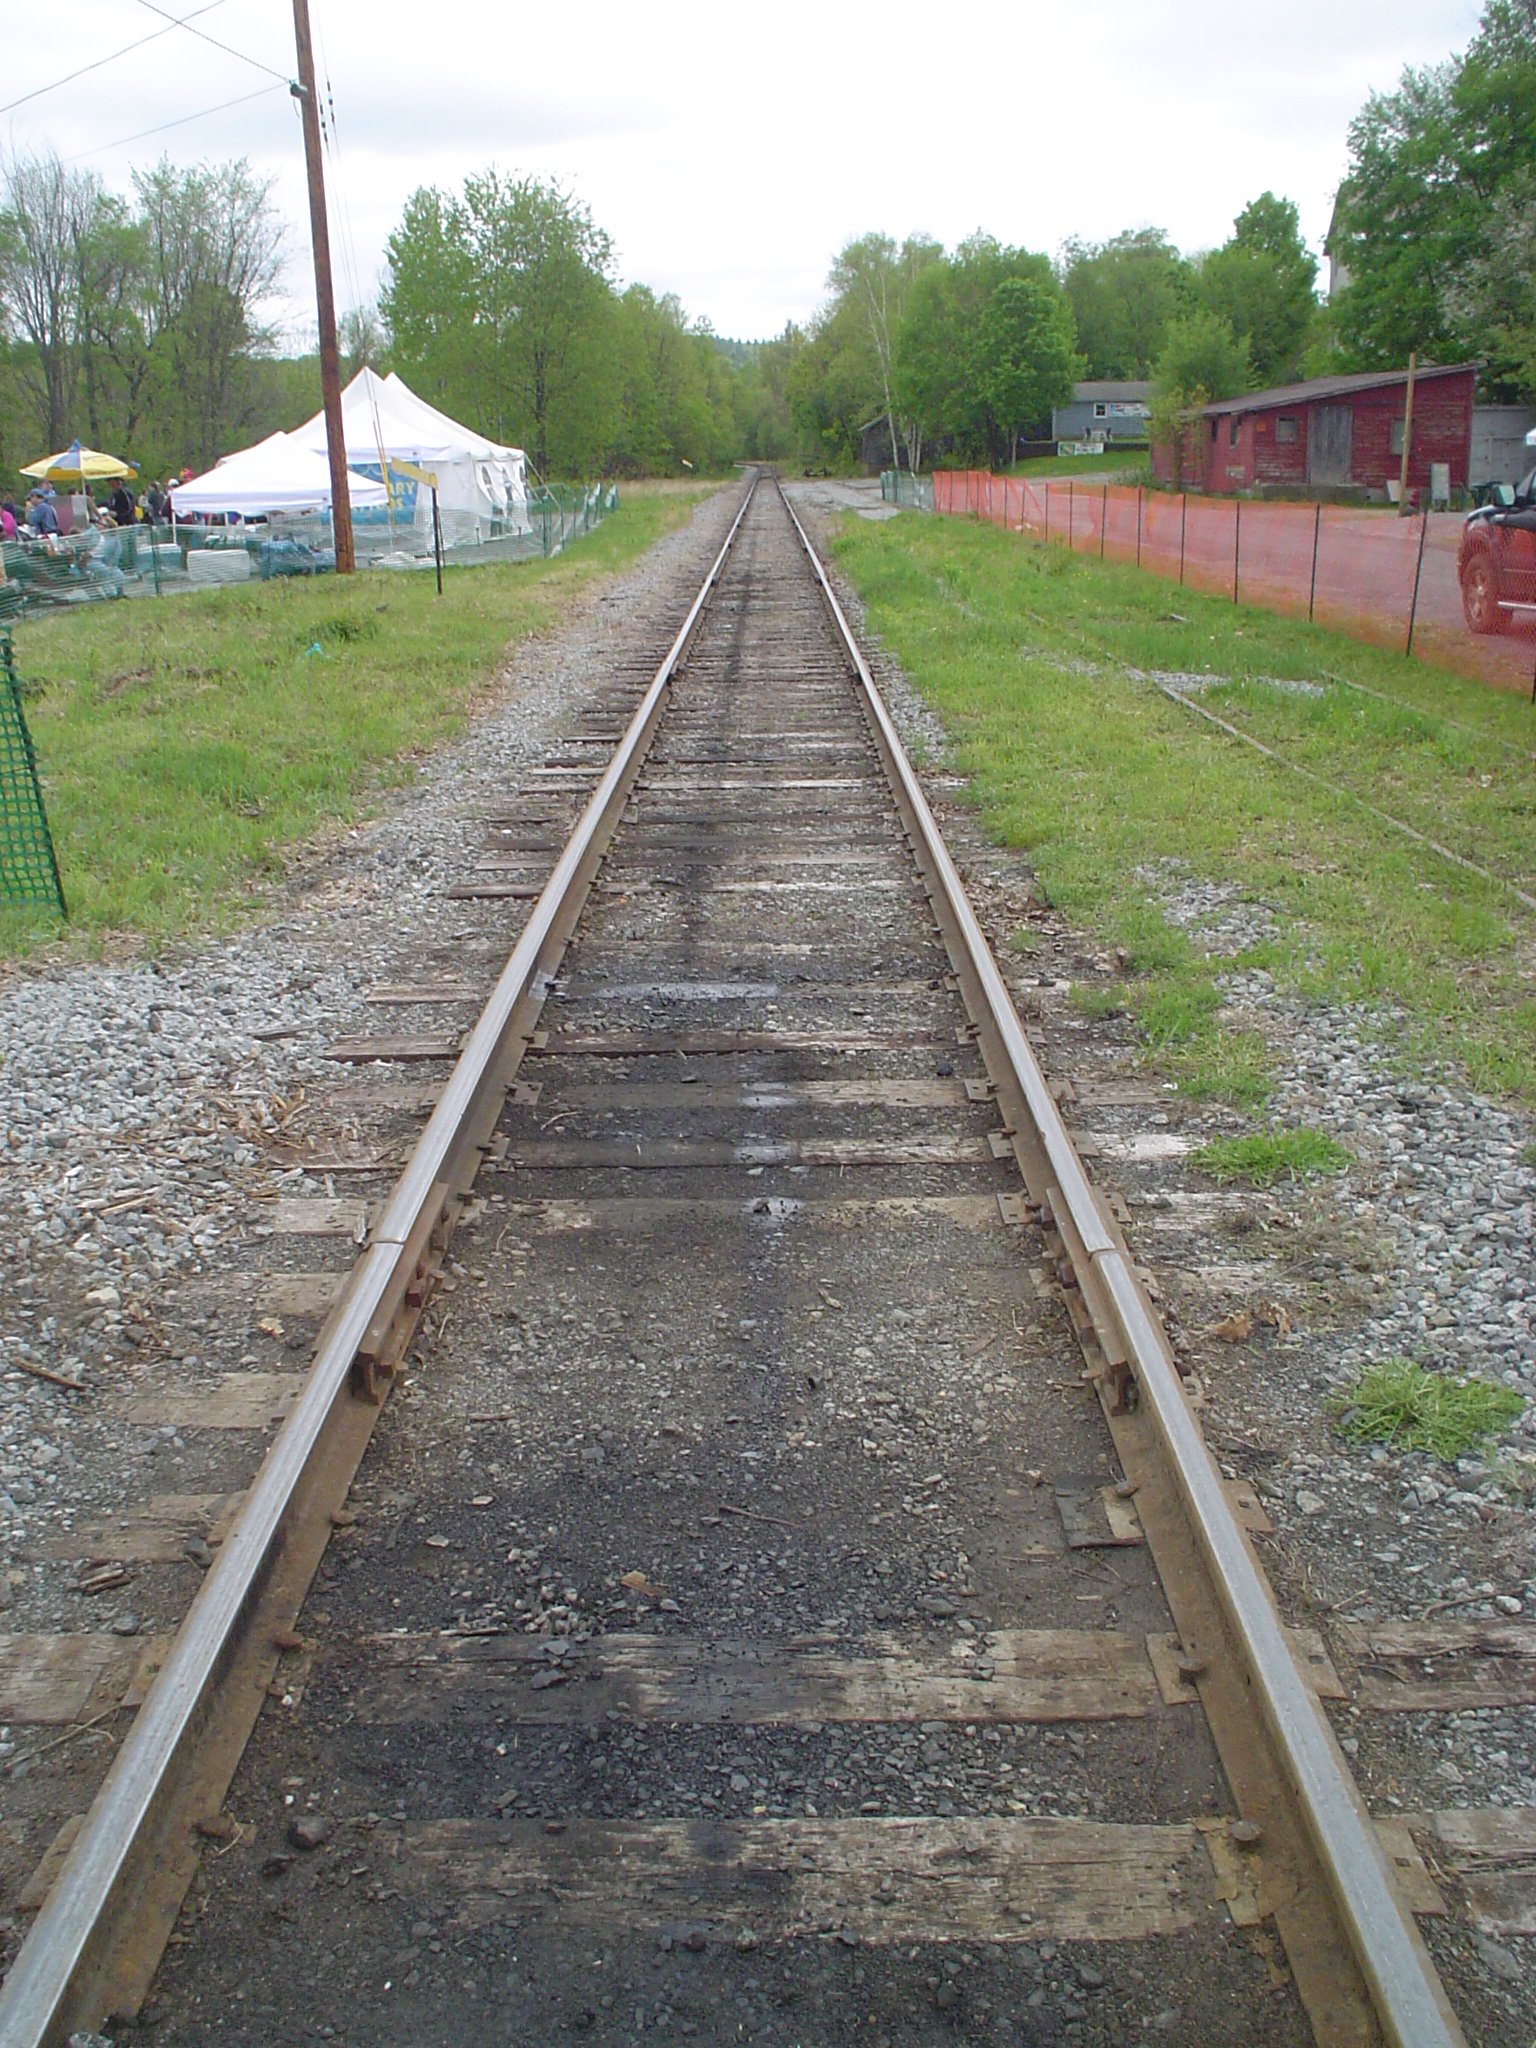 https://upload.wikimedia.org/wikipedia/commons/2/2a/Railroad-Tracks-Perspective.jpg